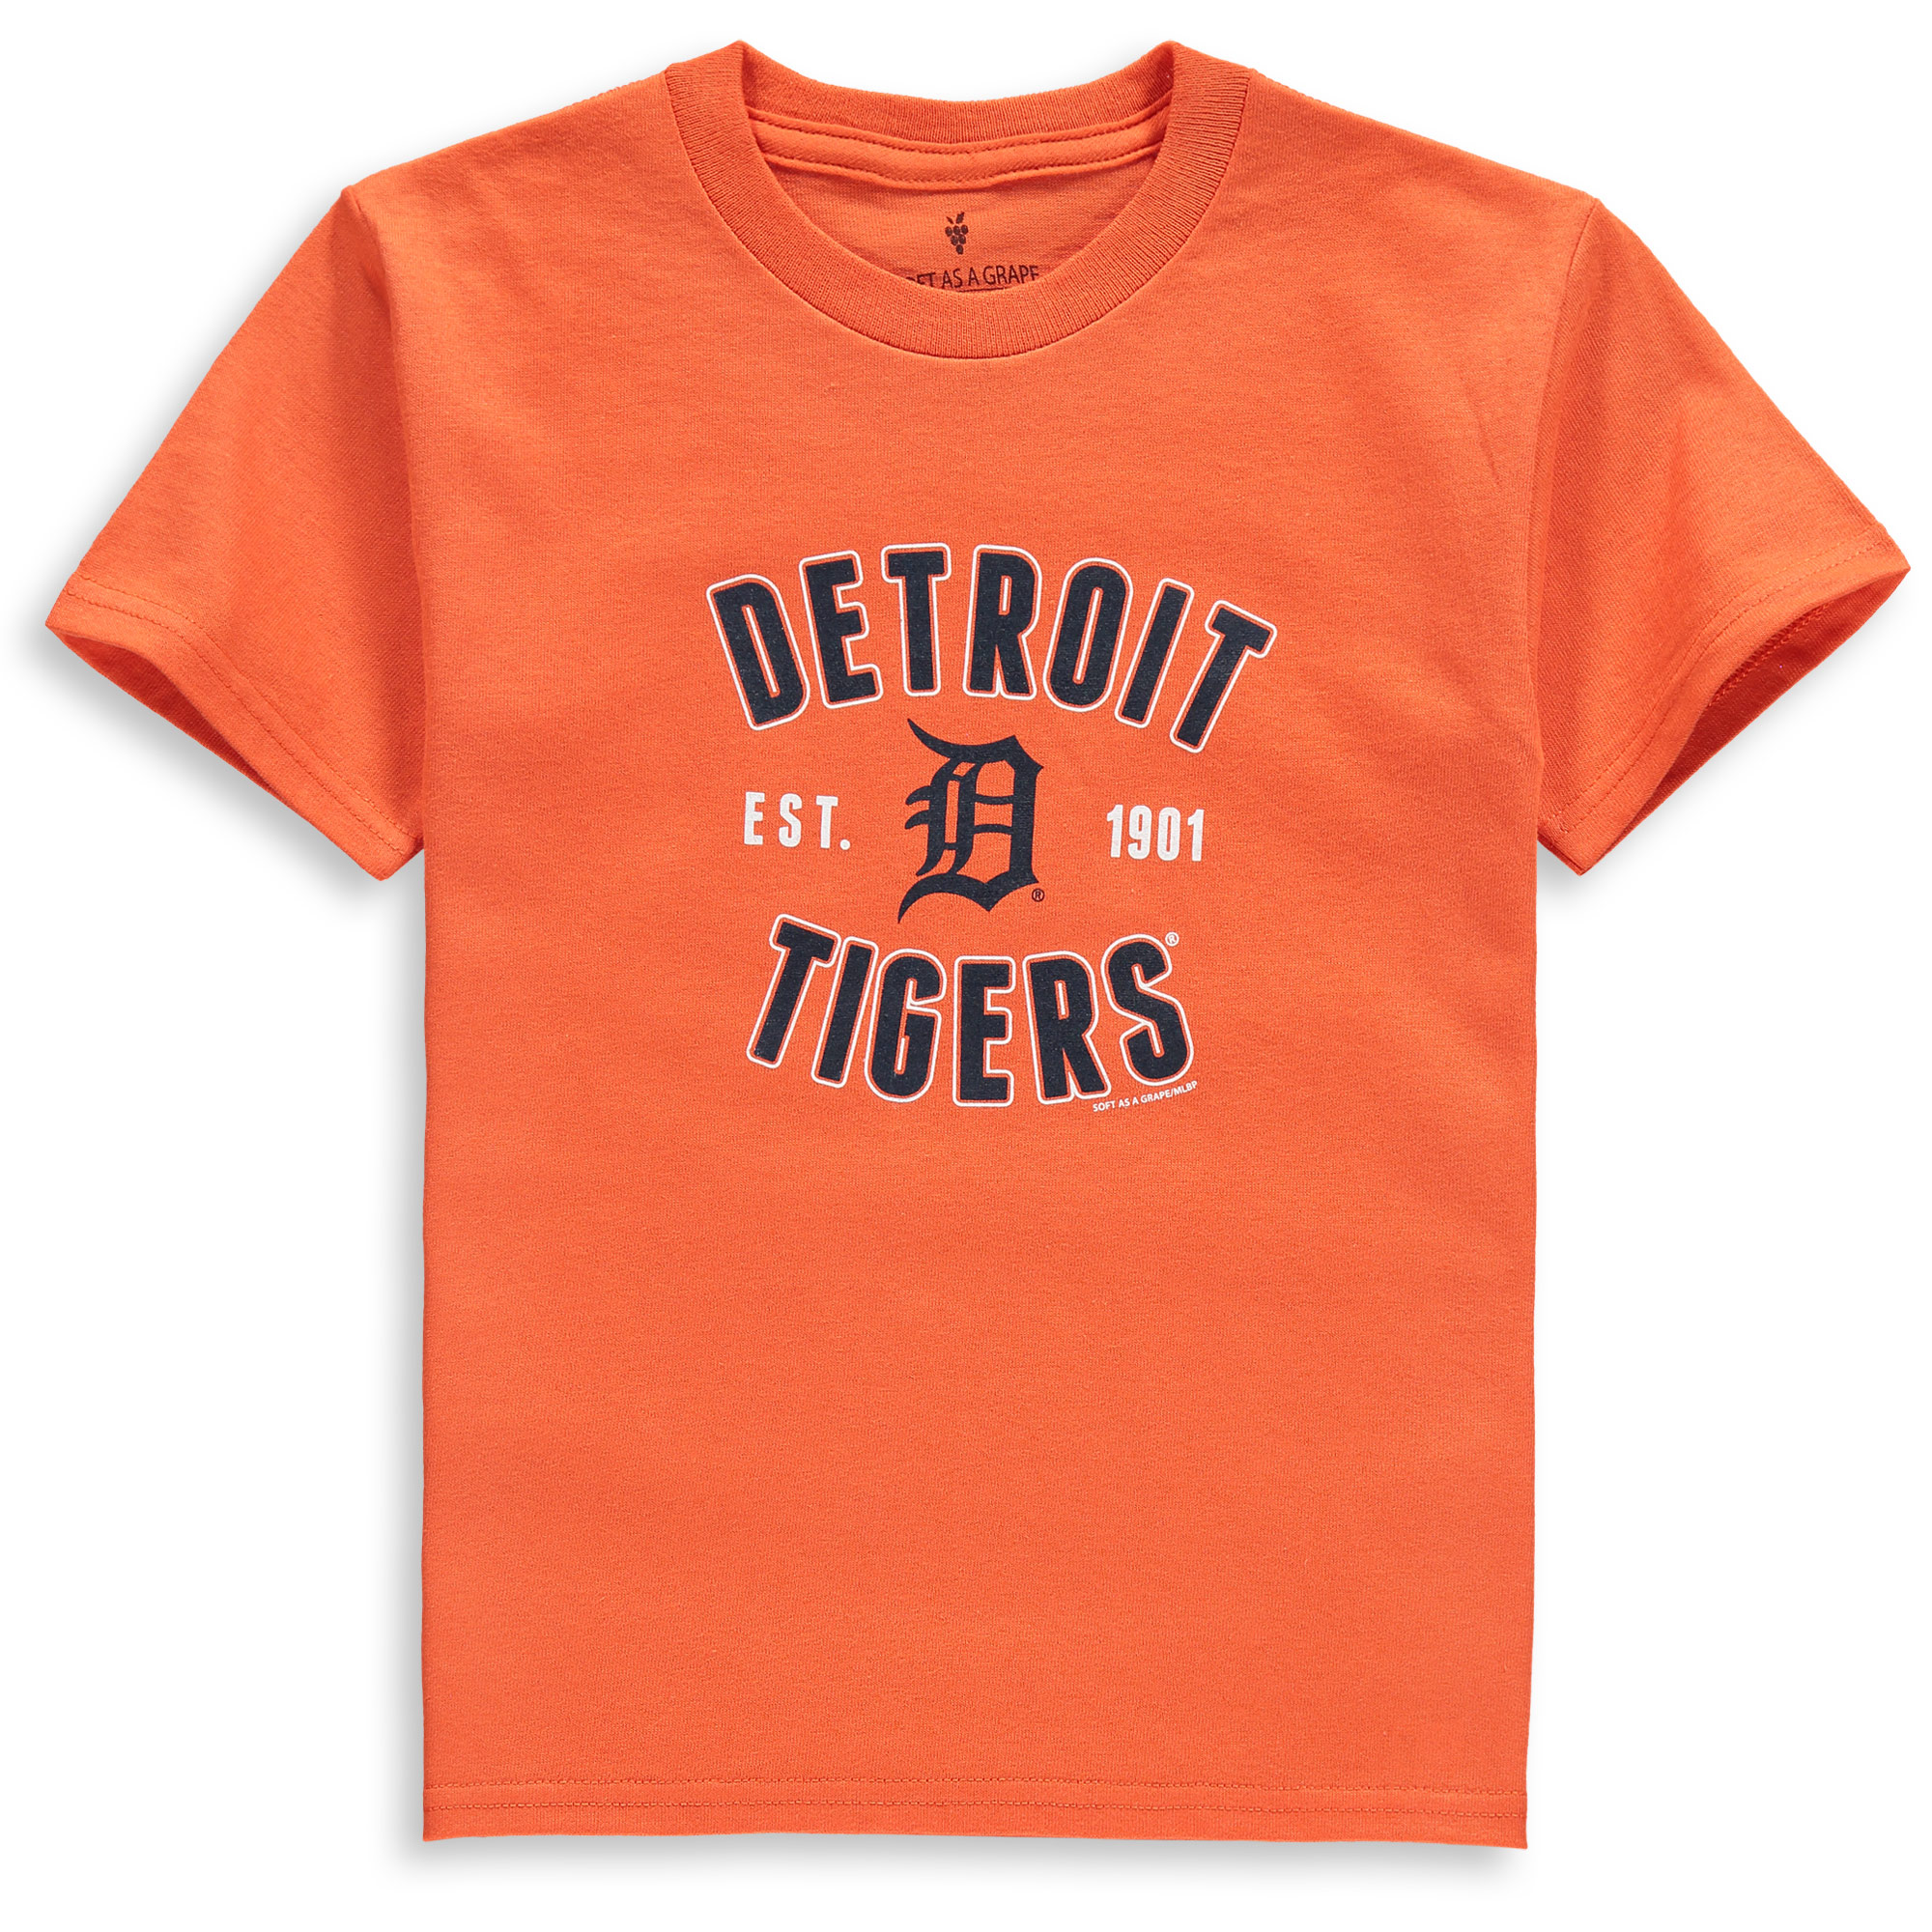 Detroit Tigers Soft as a Grape Youth Cotton Crew Neck T-Shirt - Orange